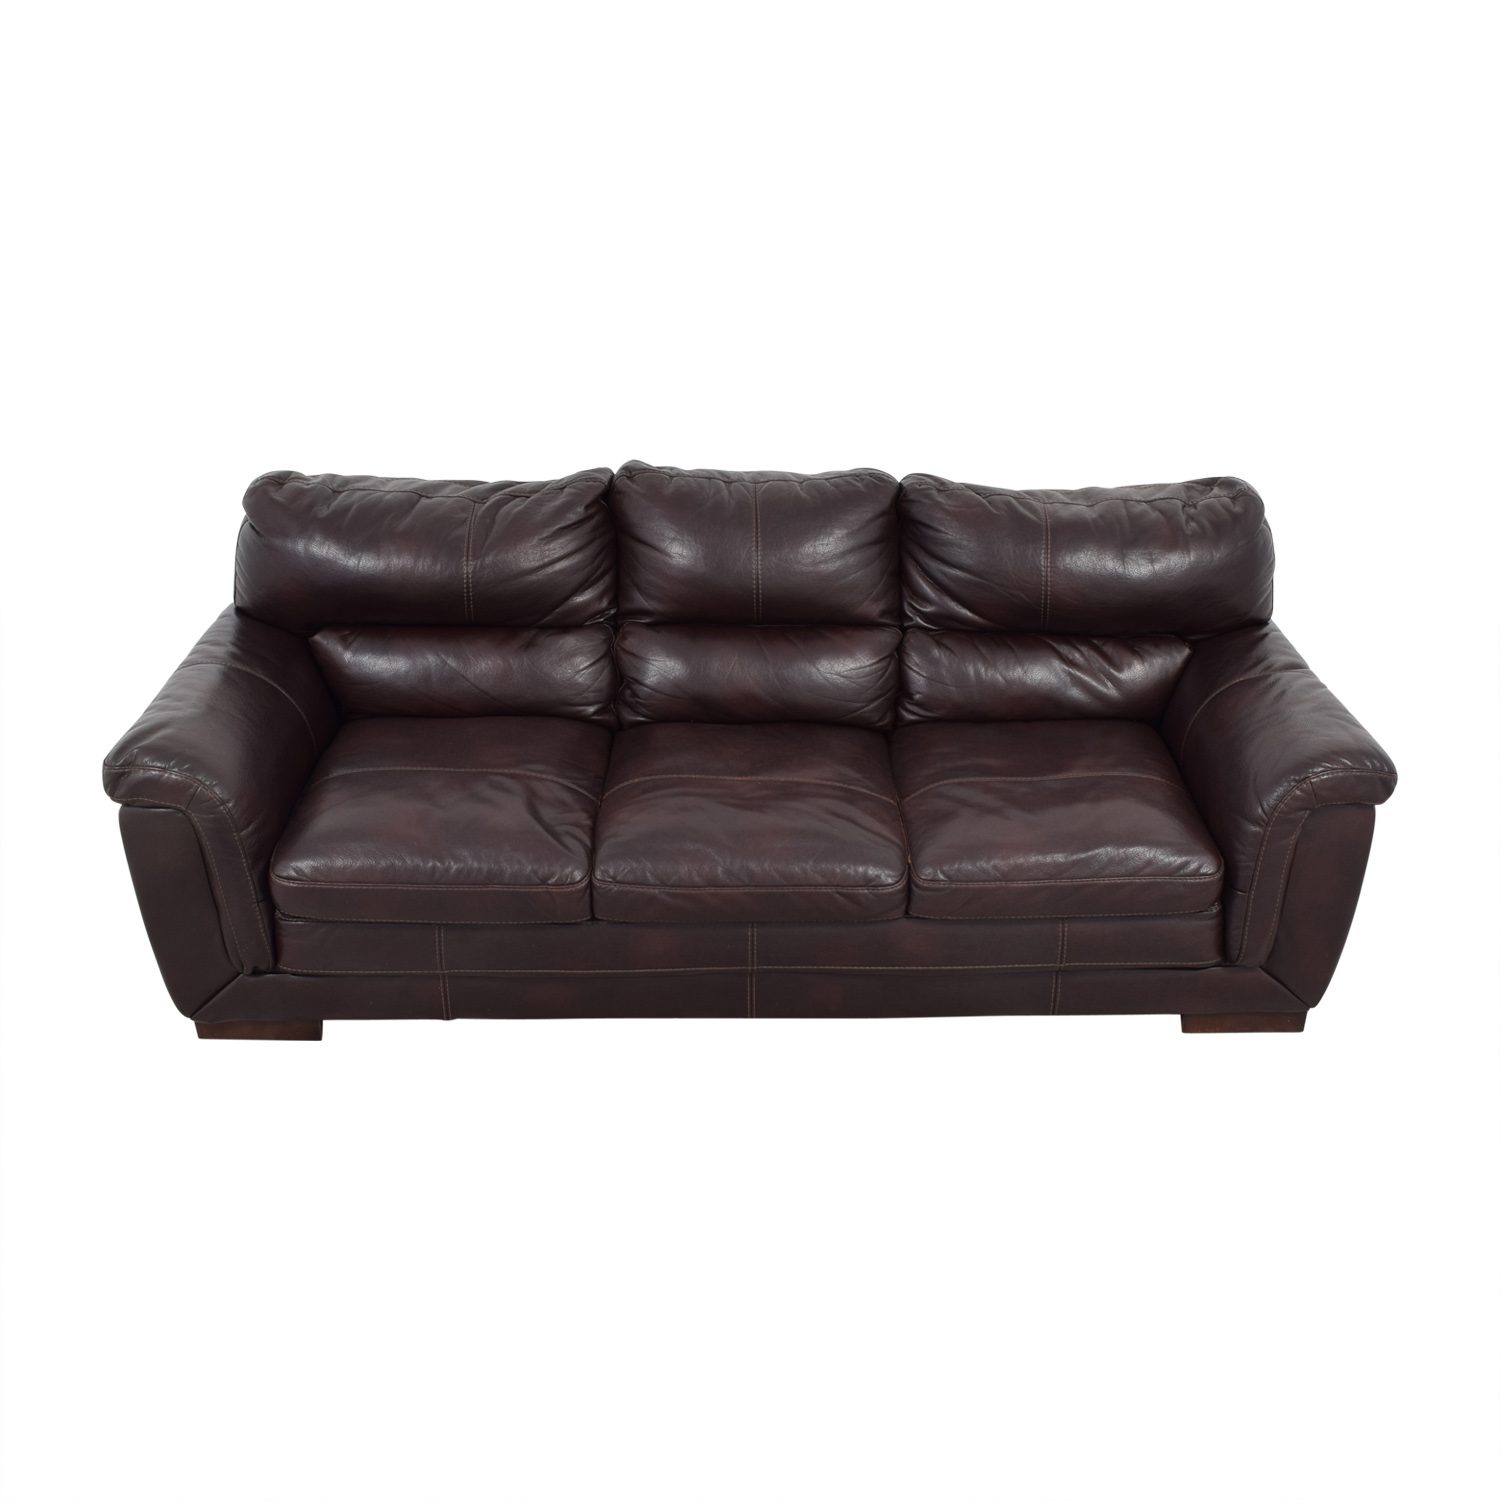 buy CB2 Brown Leather Three-Cushion Sofa CB2